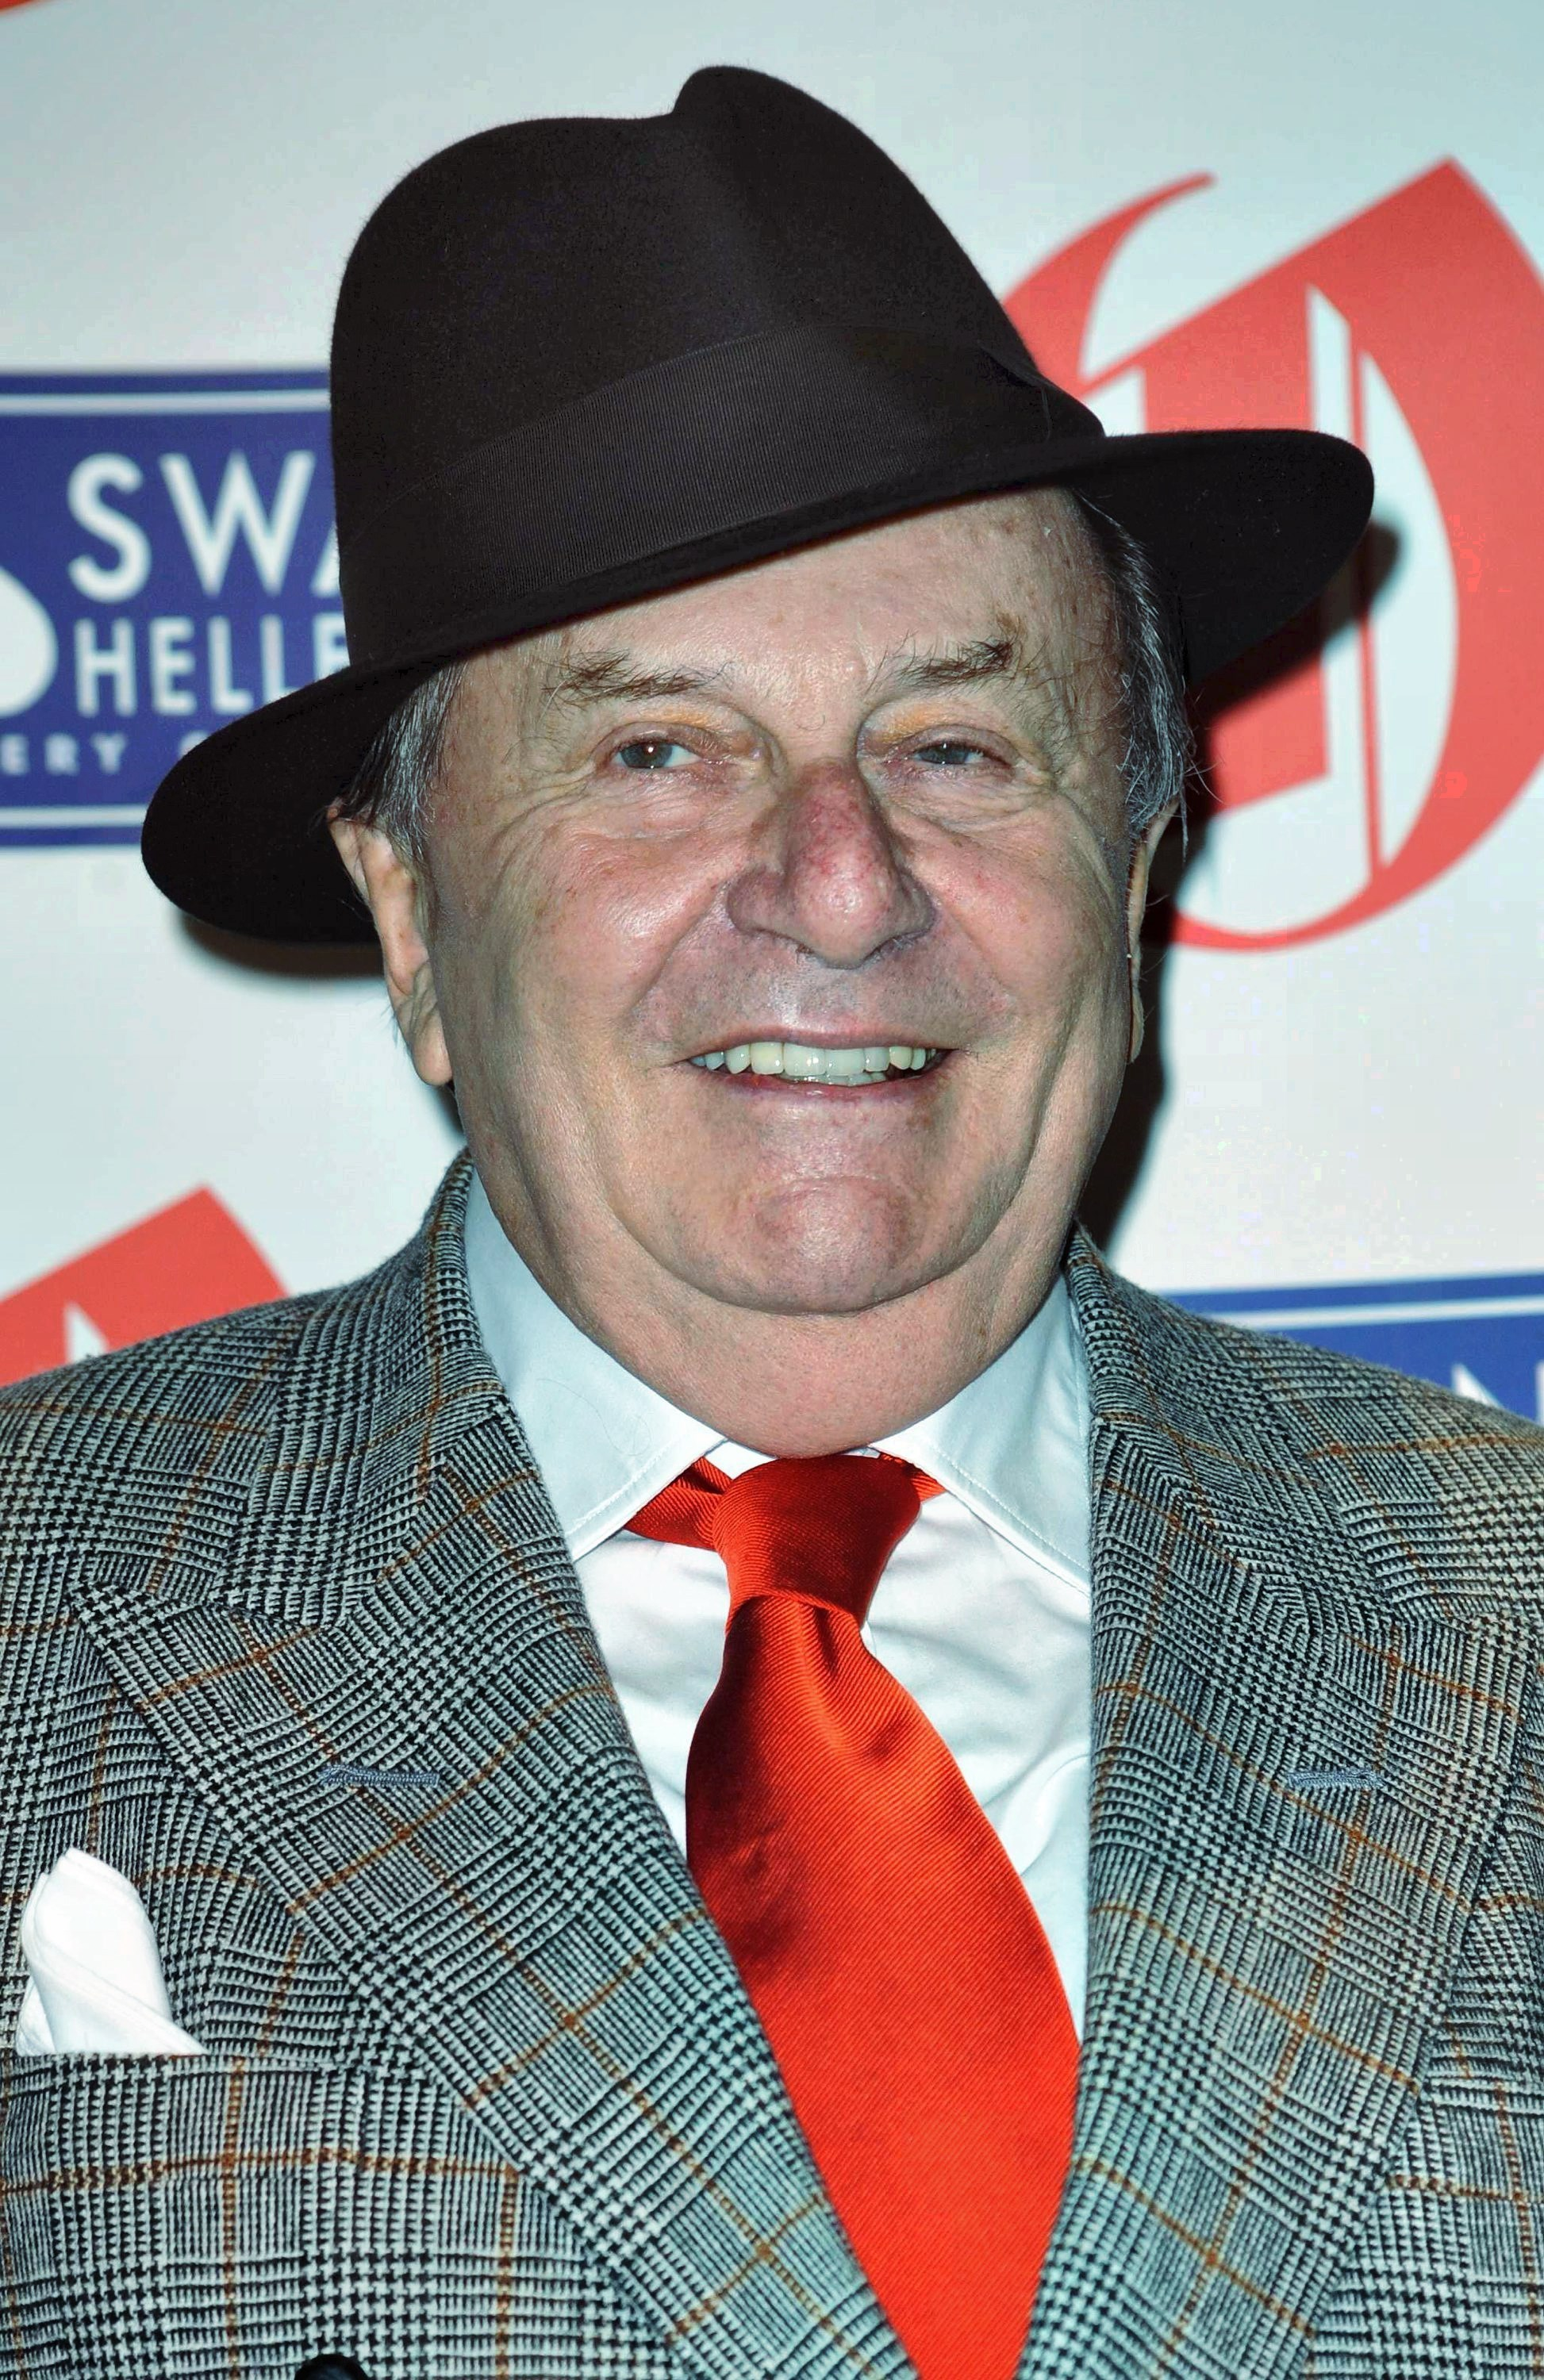 3d Wallpaper For Ipad Pro Barry Humphries Known People Famous People News And